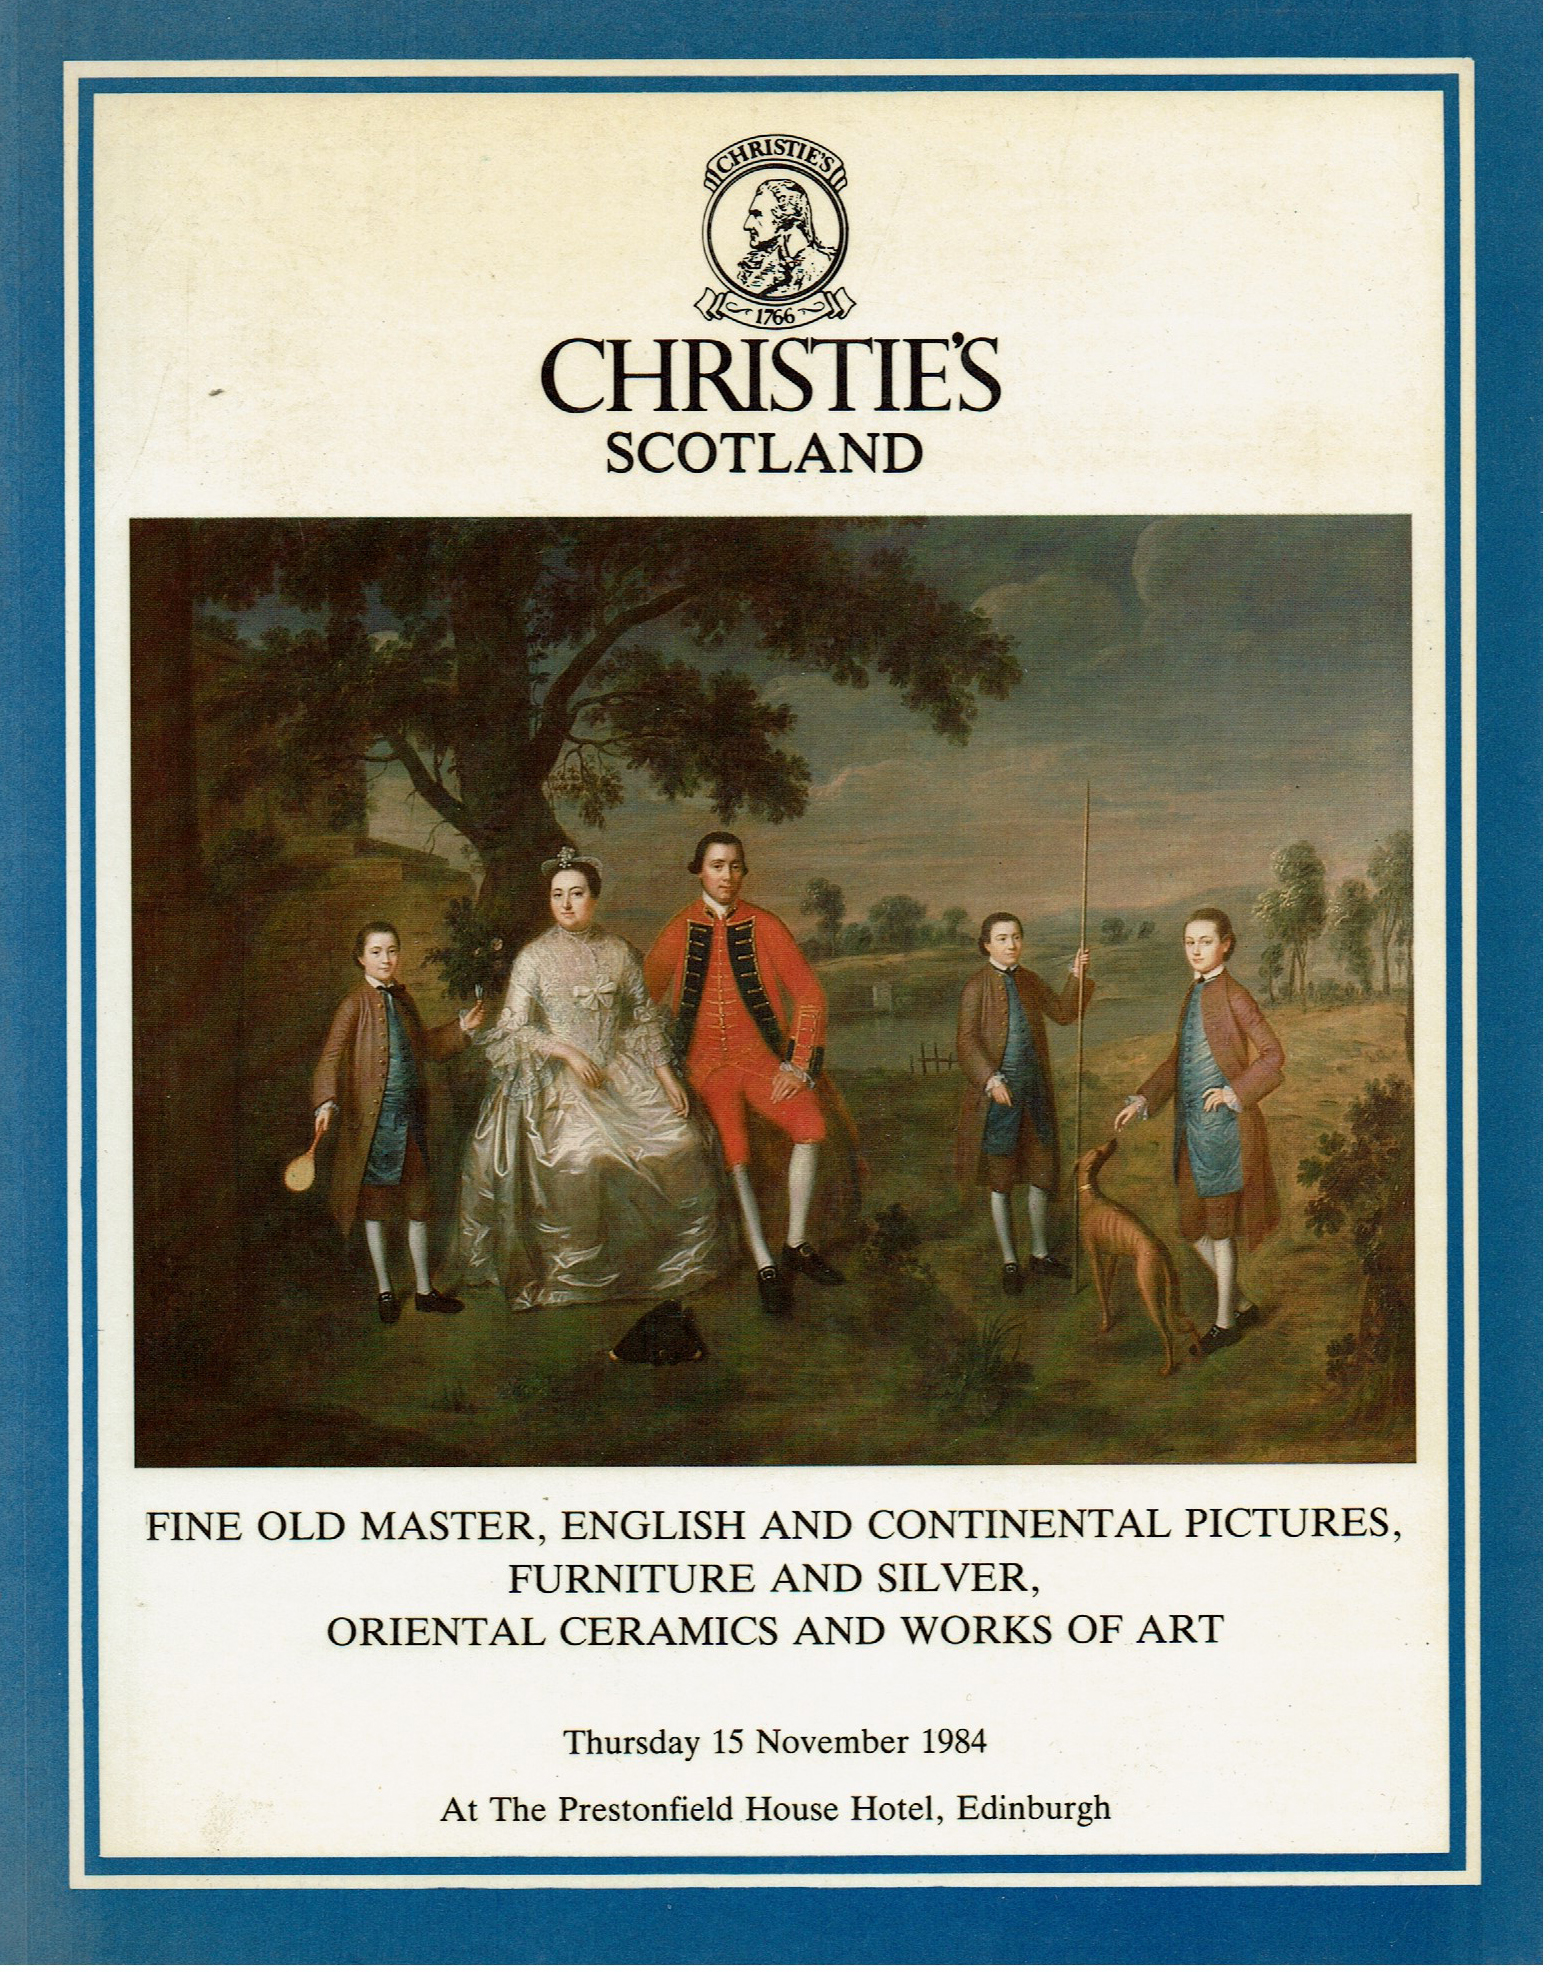 Christies Fine old master english and continental pictures furniture and silver oriental ceramics and works of art